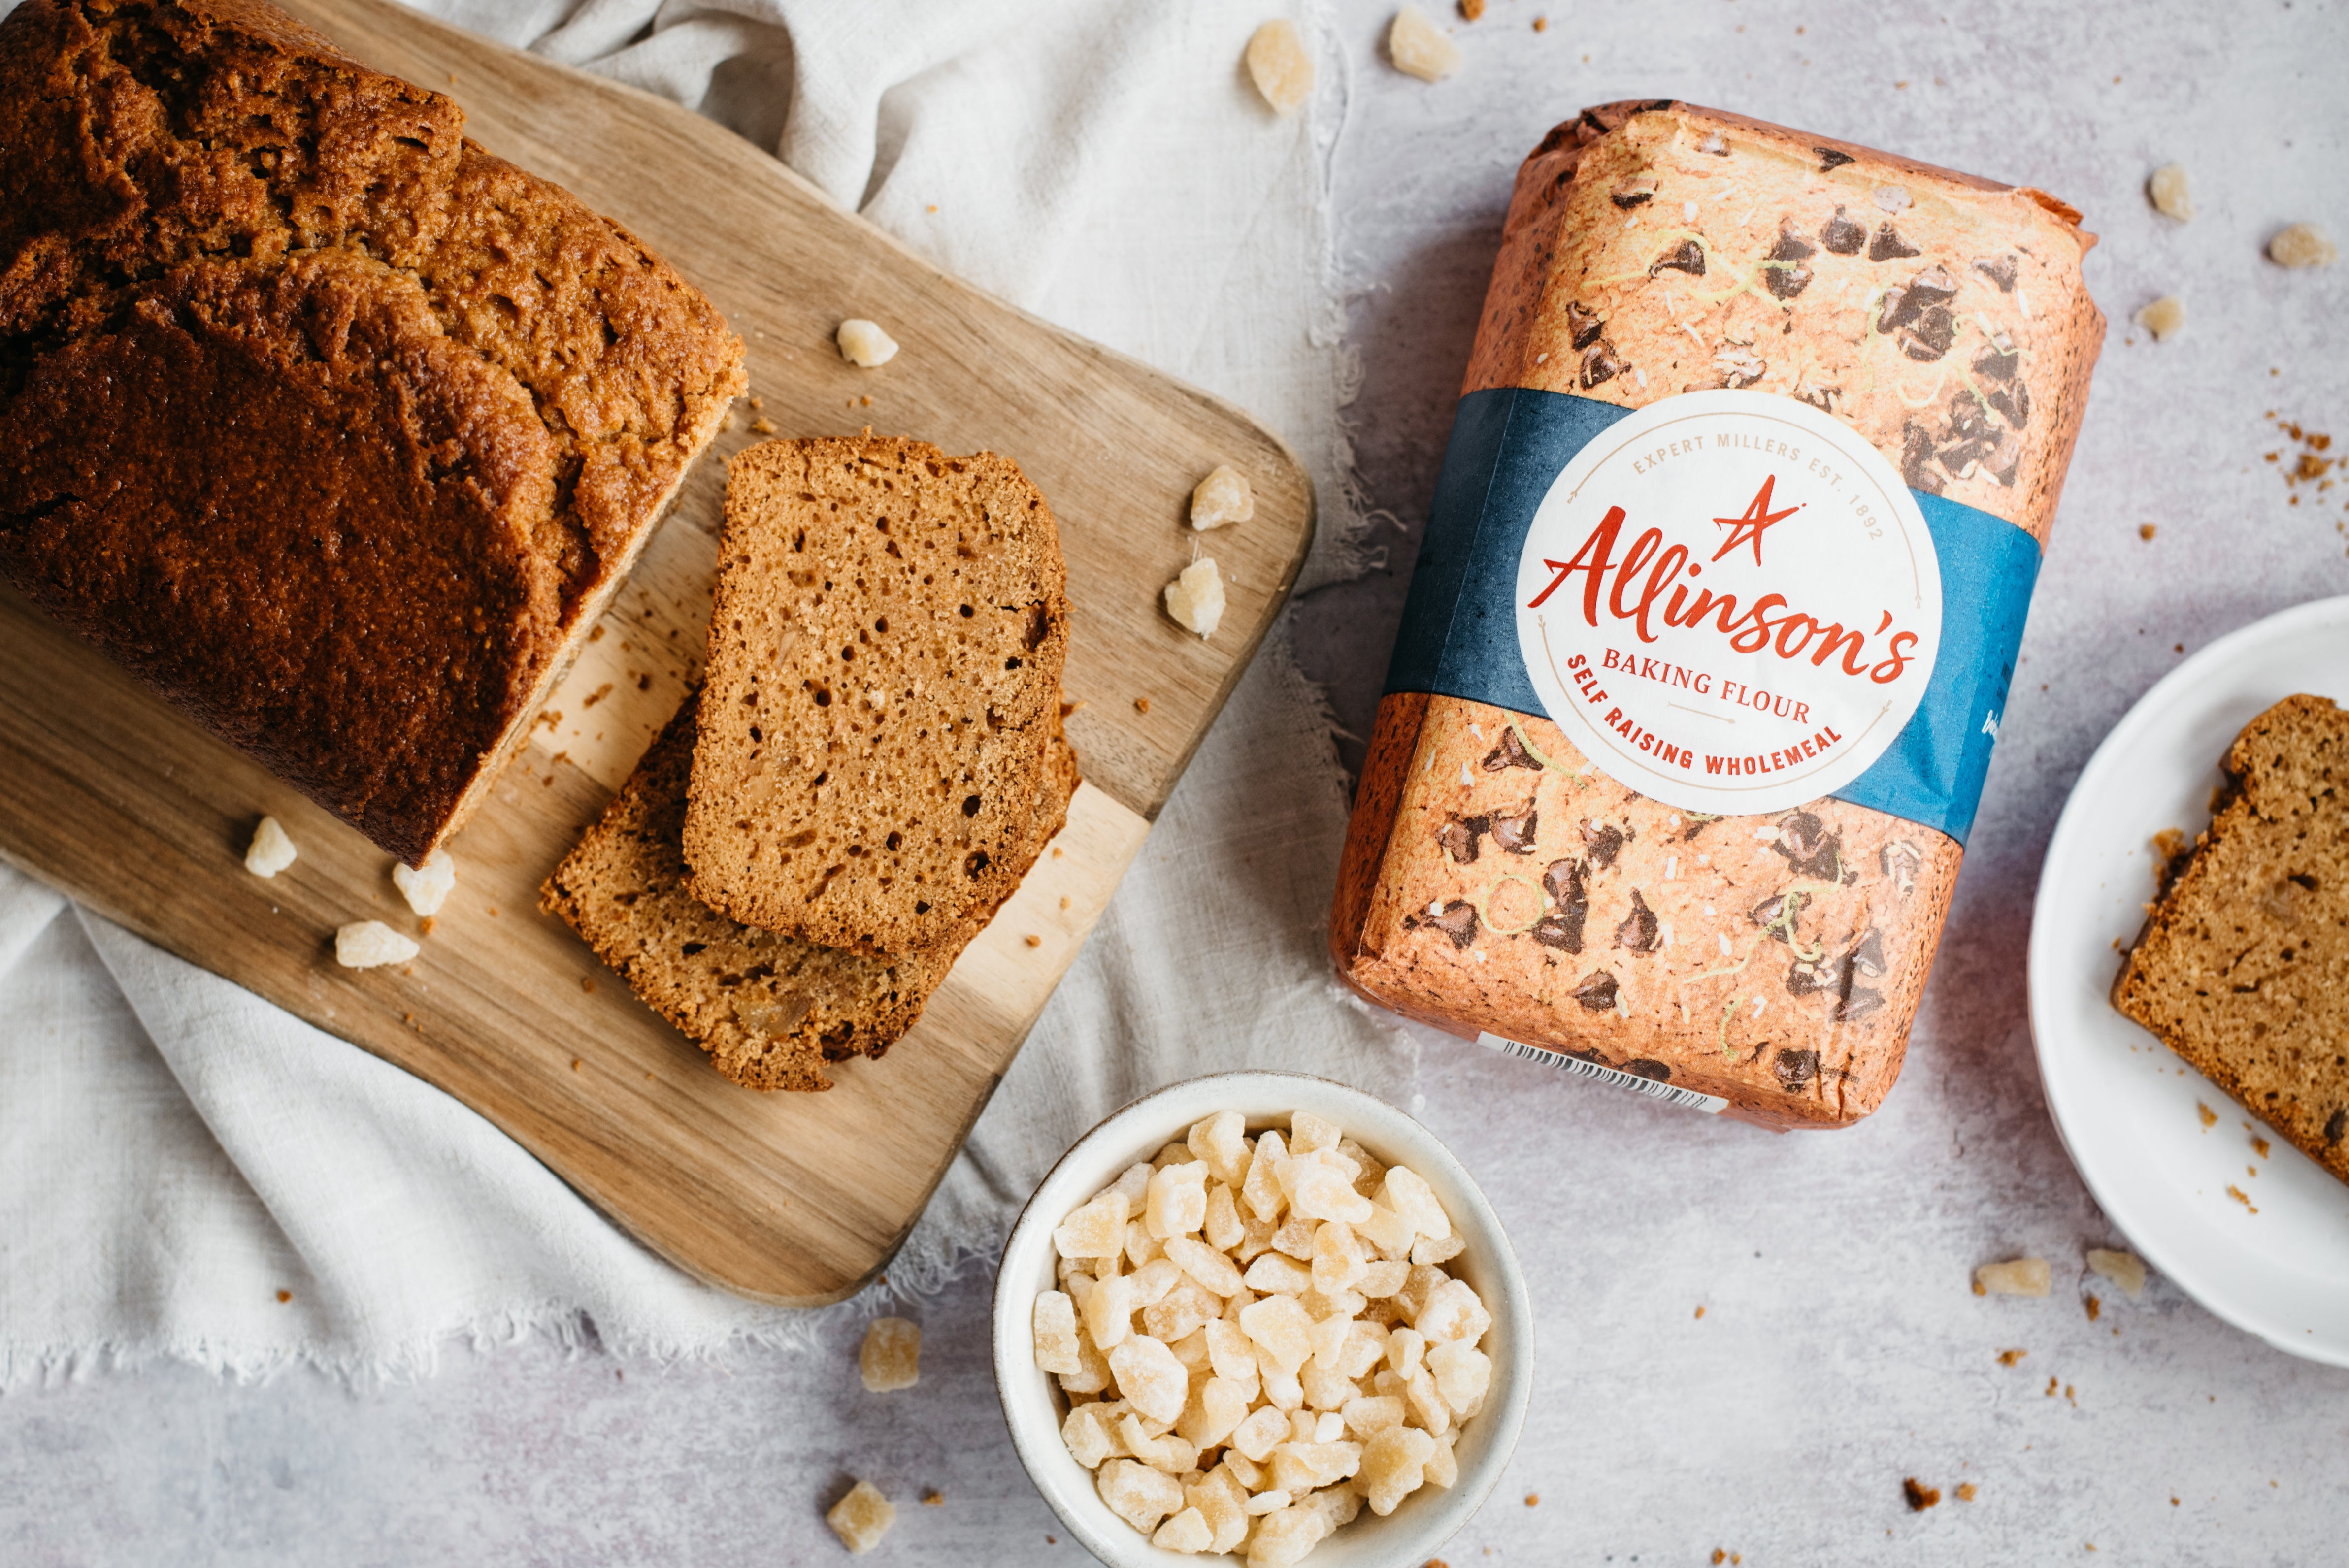 Top view of Gingerbread Loaf on a wooden serving board, next to a bowl of crystallised ginger and a bag of Allinson's self raising flour